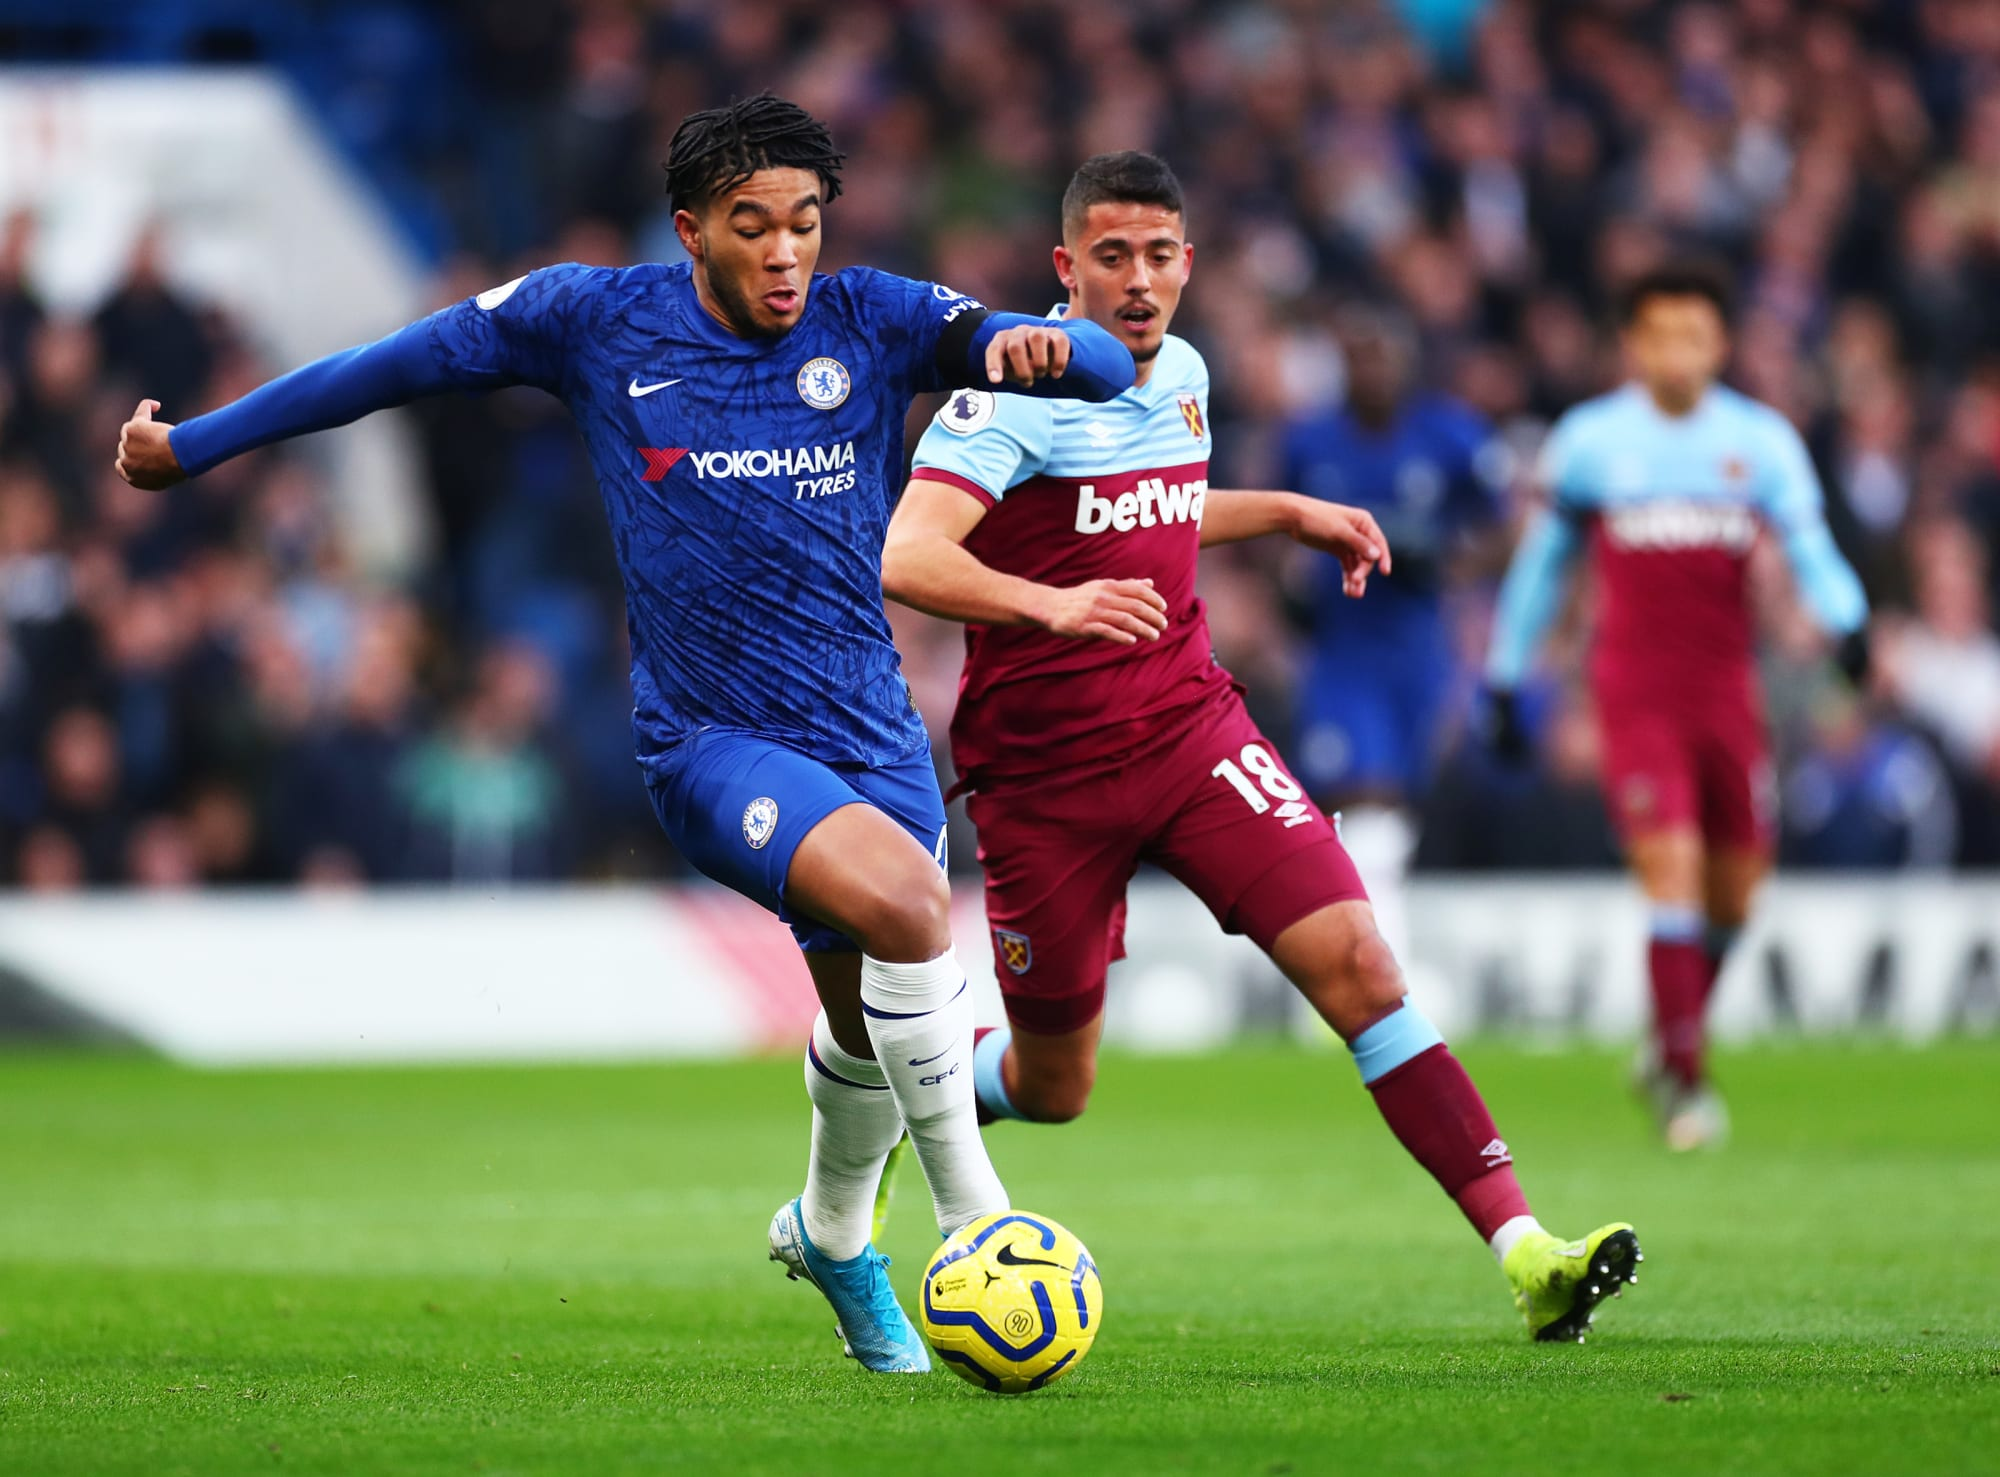 Chelsea score predictions: Blues drop hammer on West Ham